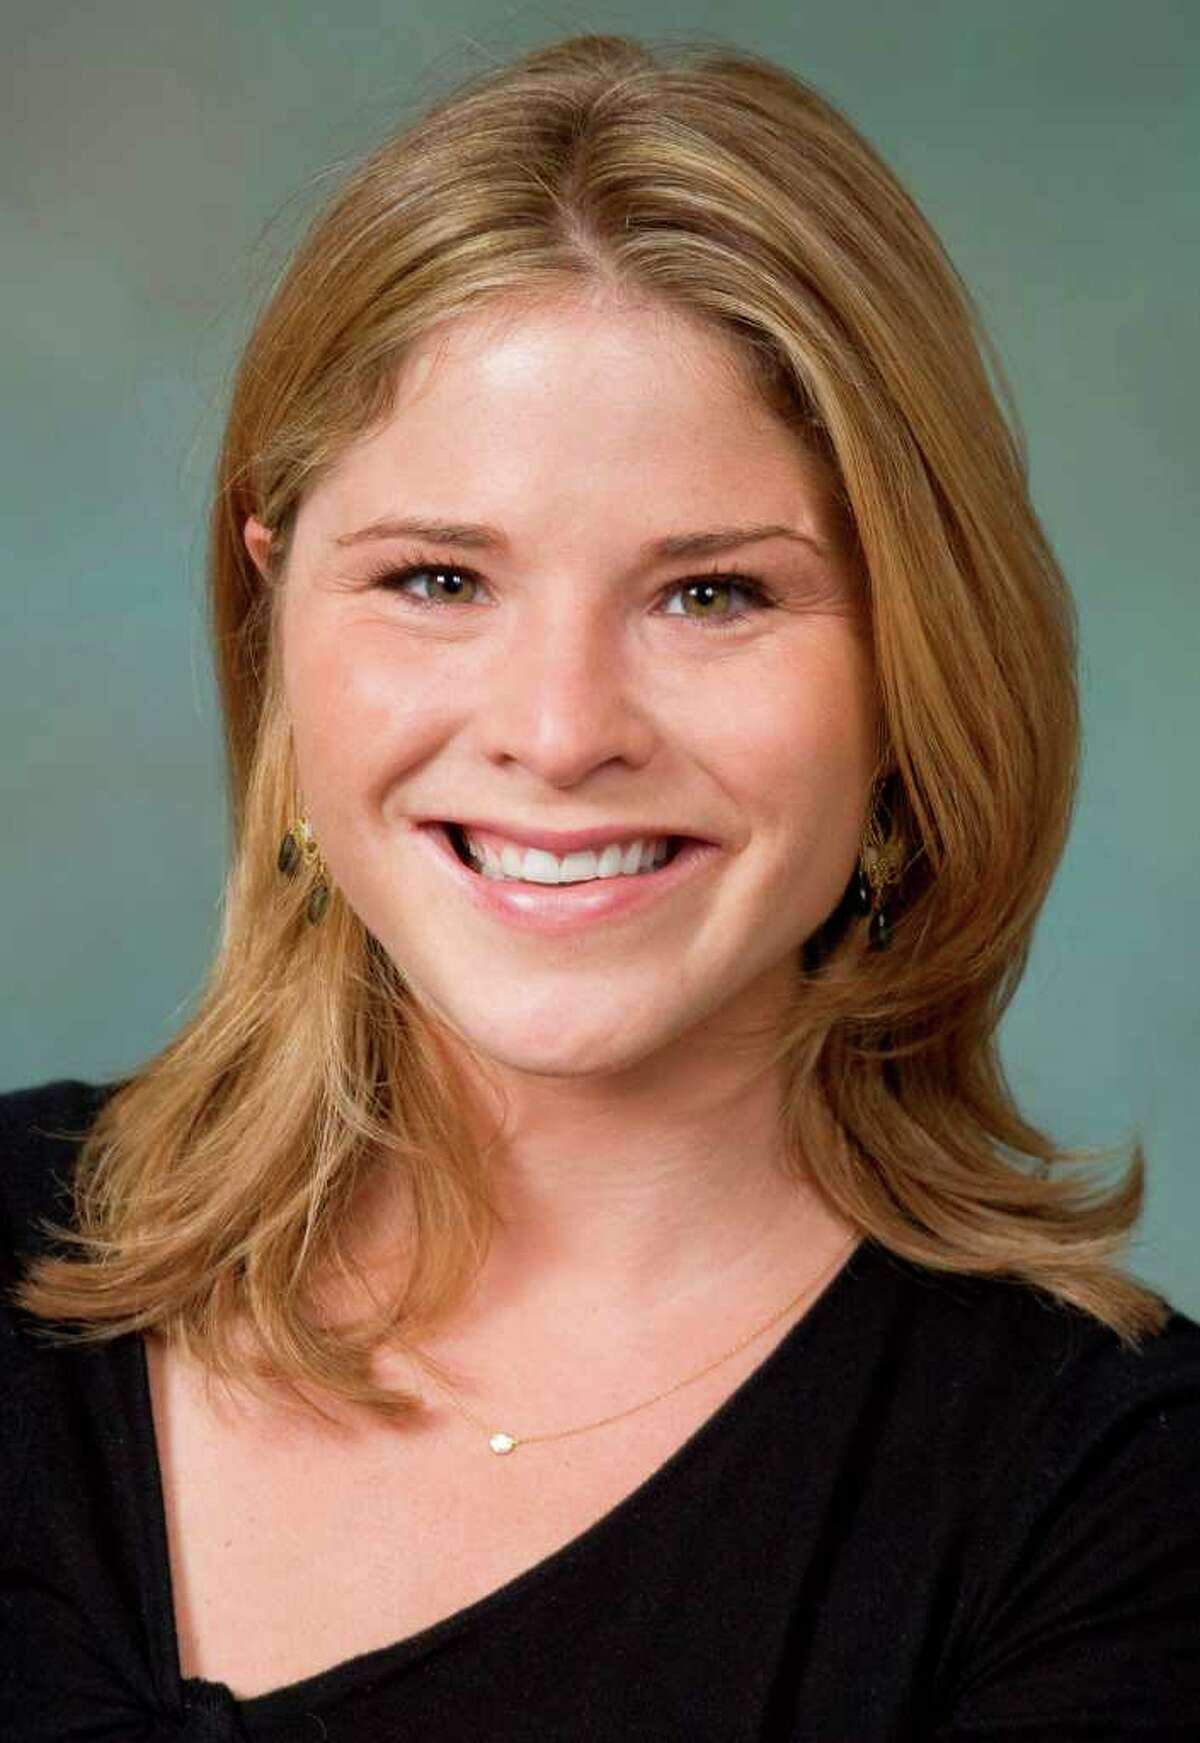 """Jenna Bush Hager, daughter of former President George W. Bush and former First Lady Laura Bush, will be the keynote speaker at the Women of Vision Fairfield County 10-year anniversary celebration April 1 at Burning Tree Country Club. Hager, a correspondent to NBC's """"Today"""" and the author of """"Ana's Story: A Journey of Hope,"""" will present the keynote address, """"Making a Difference: How the Power of Compassion Changes Lives."""""""